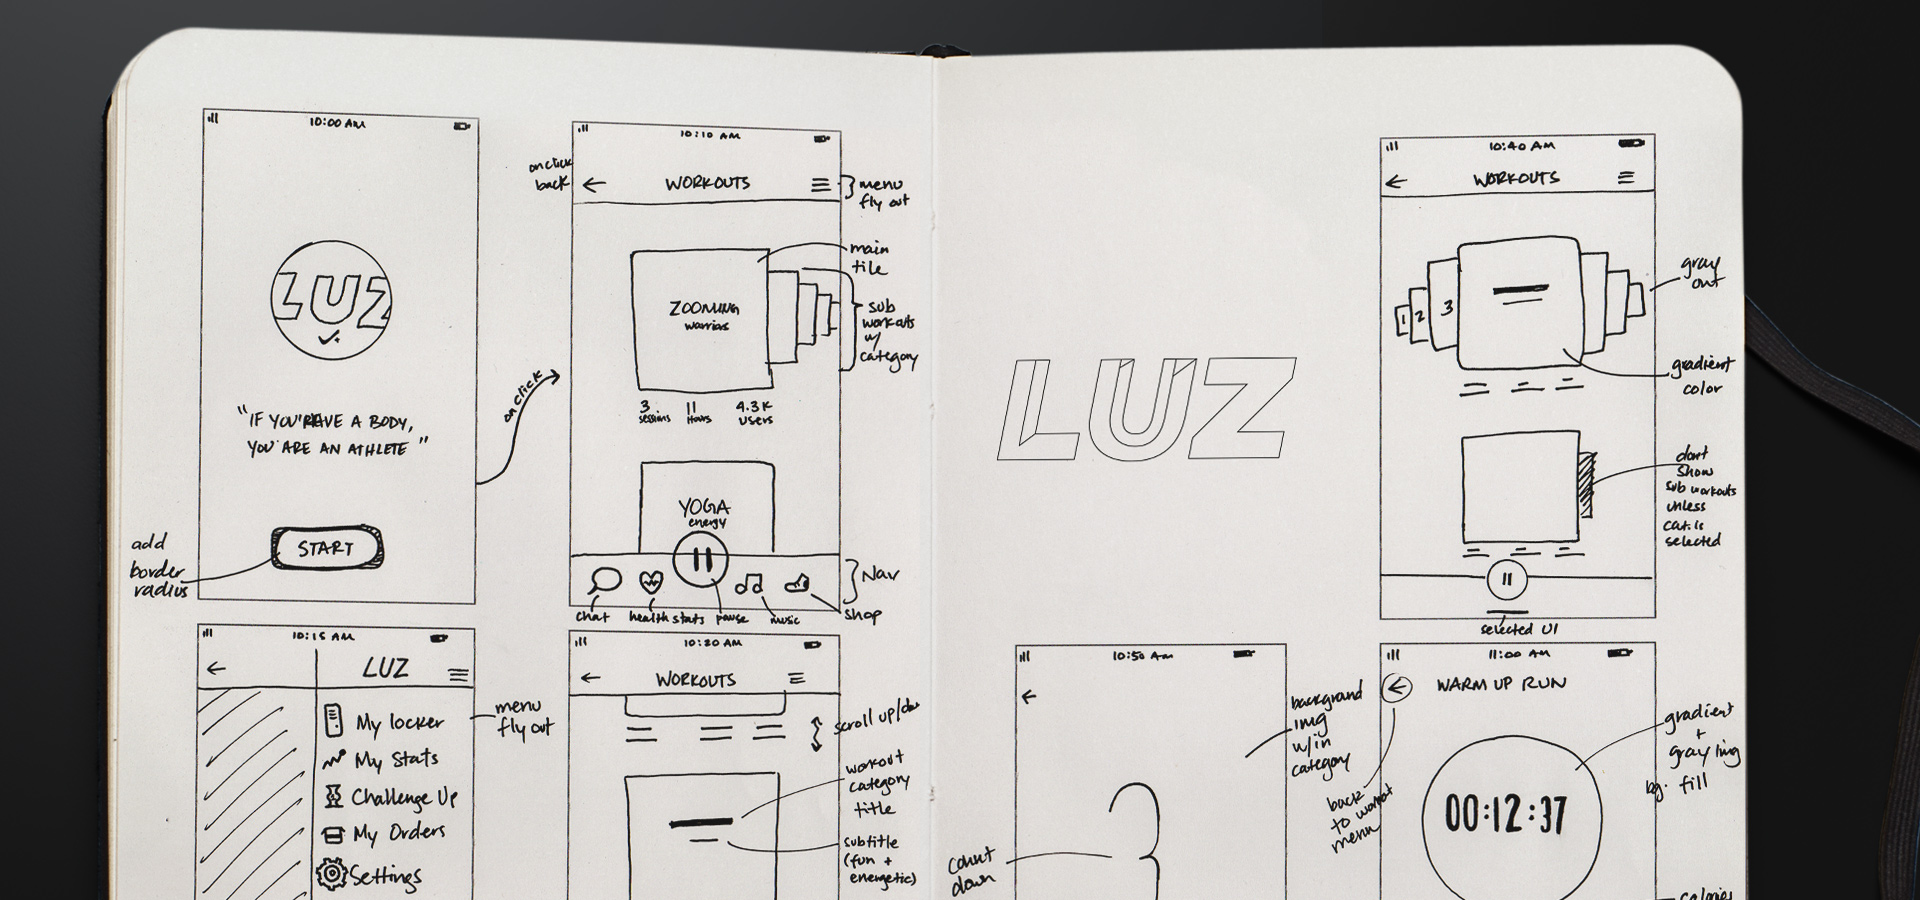 LUZ App wireframe sketches